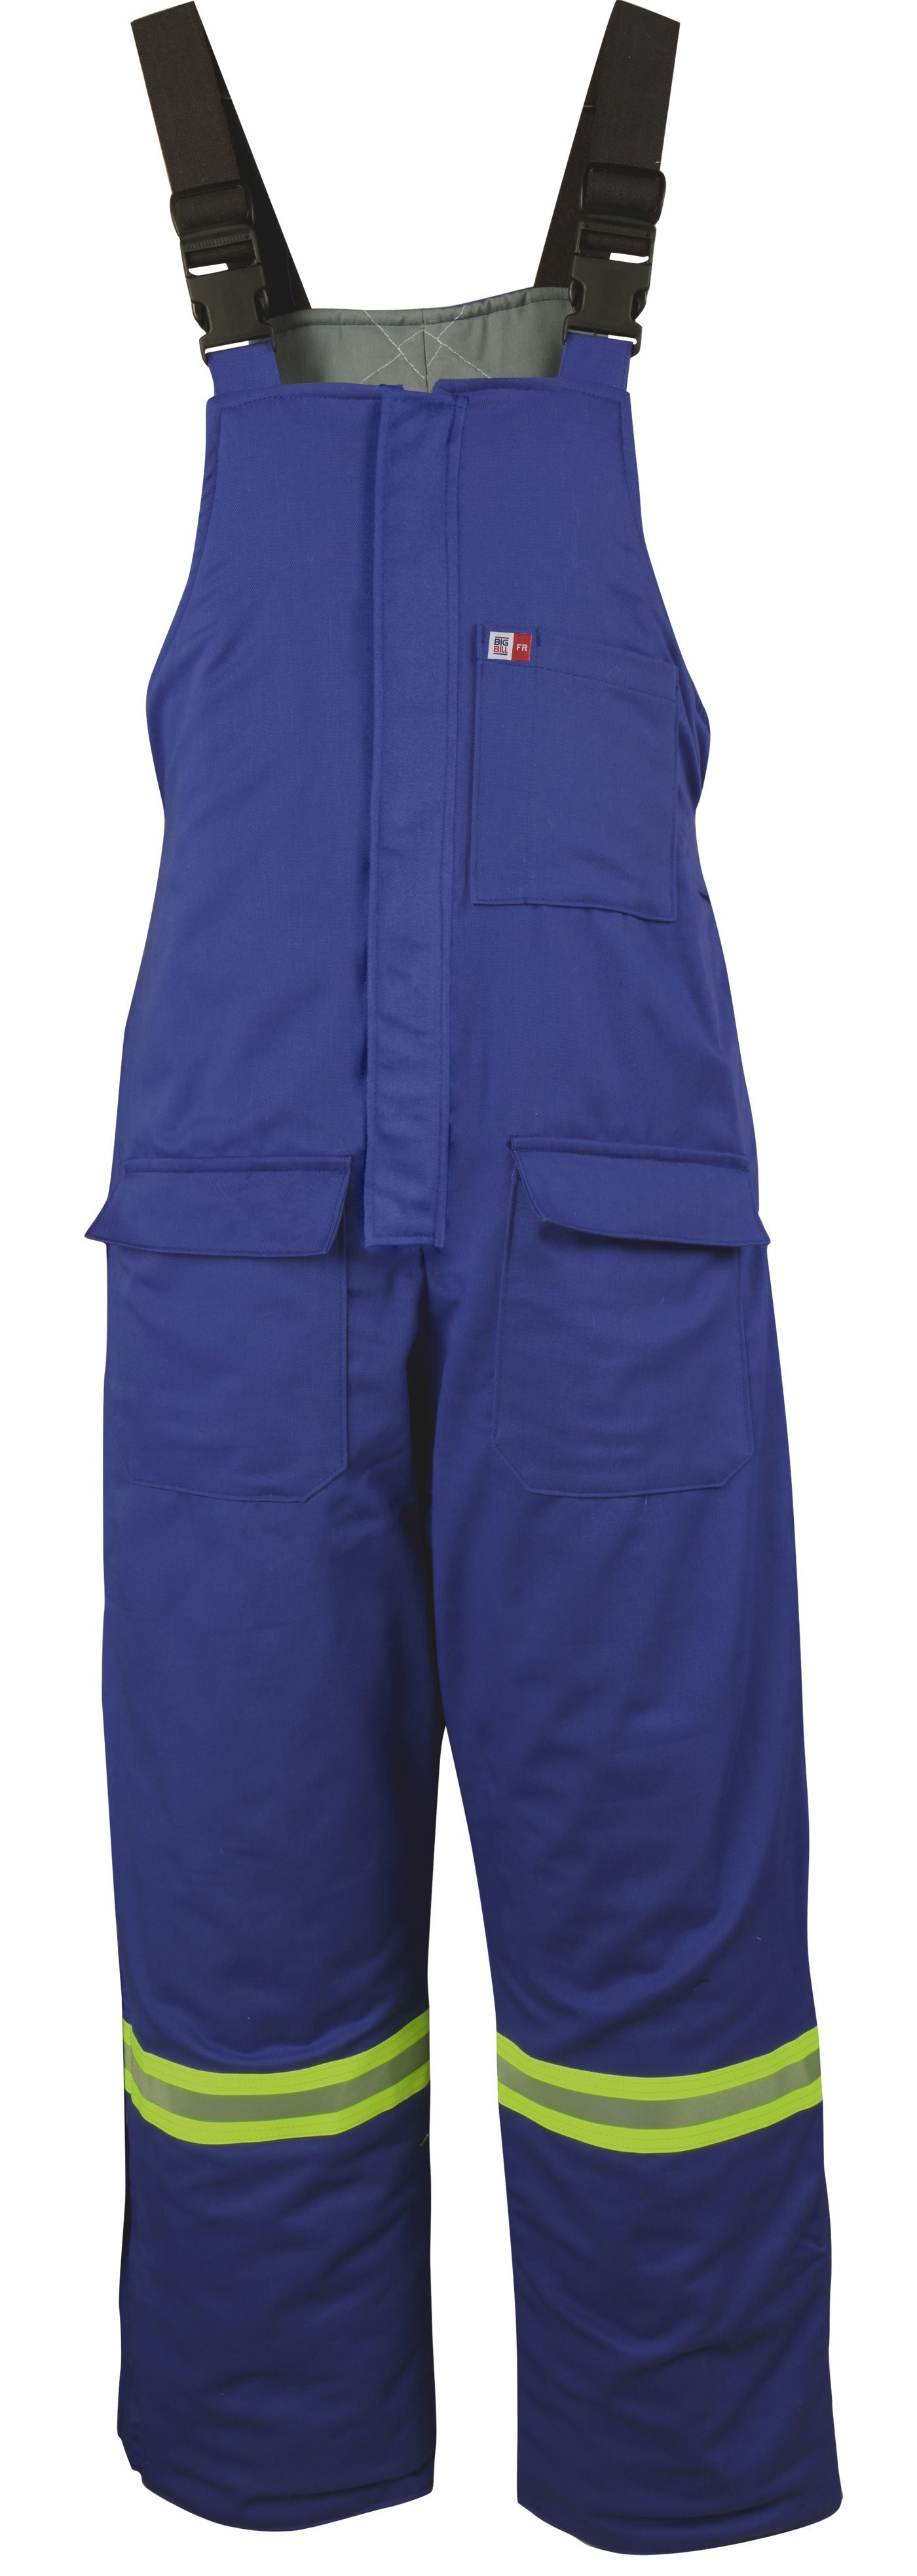 7 oz Ultrasoft® Insulated Bib Overall with Reflective Material-BIG BILL